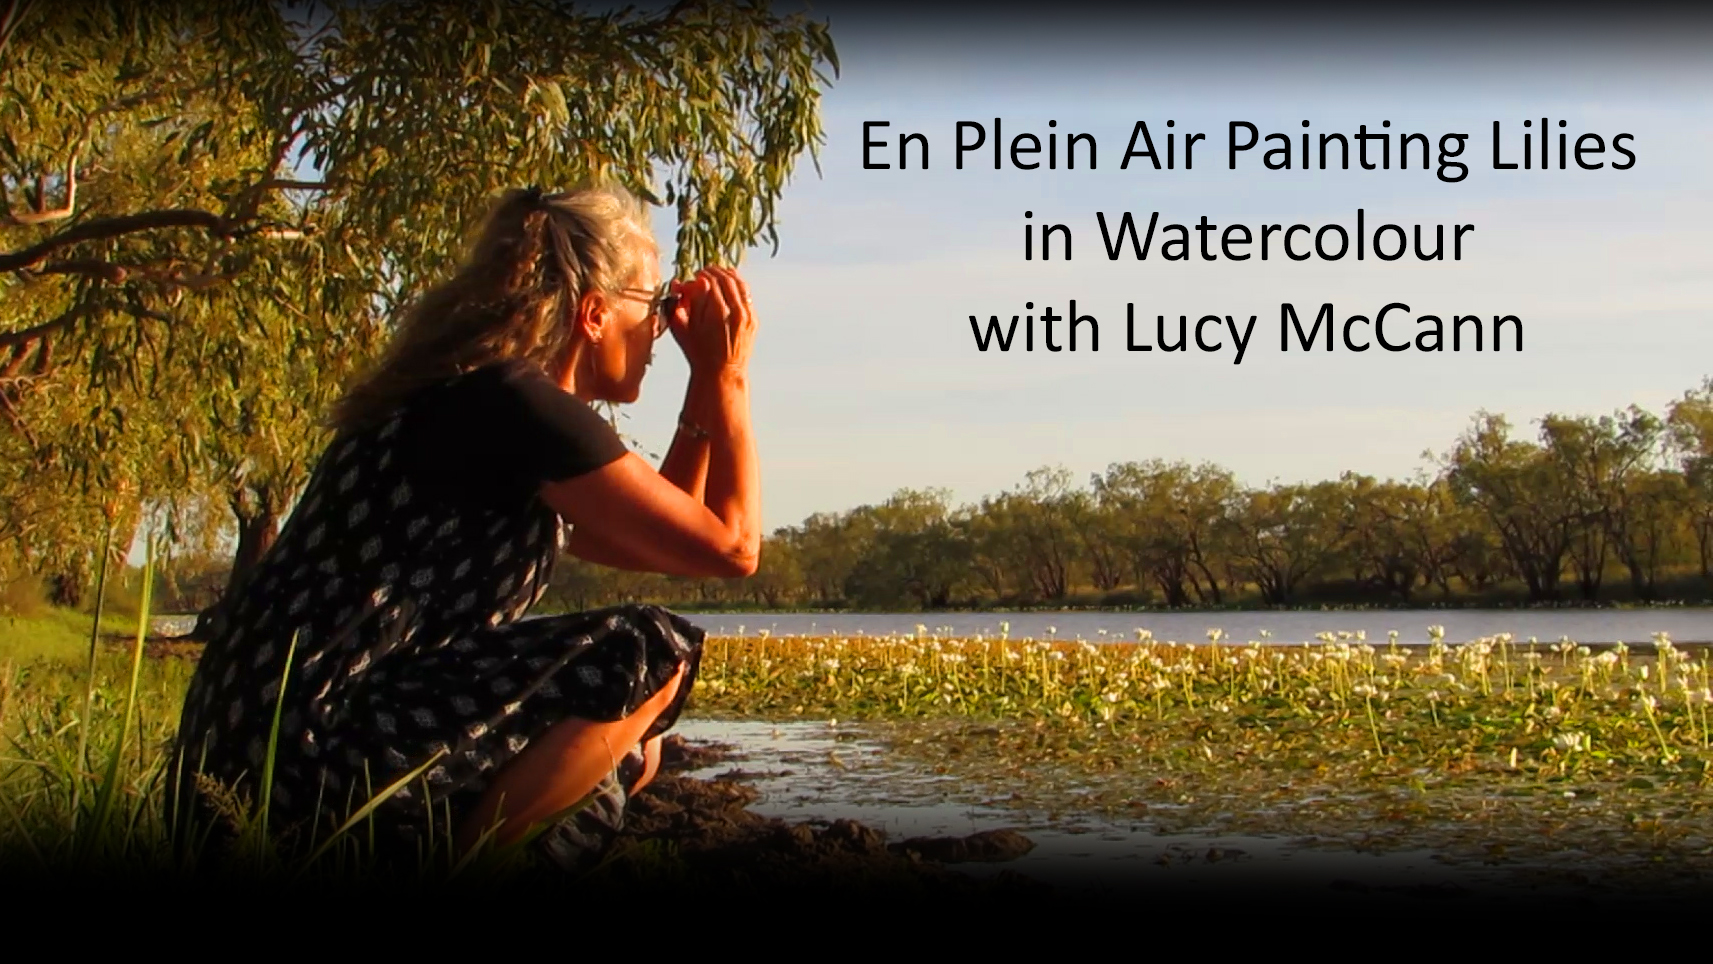 En plein air painting lilies in watercolour with Lucy McCann